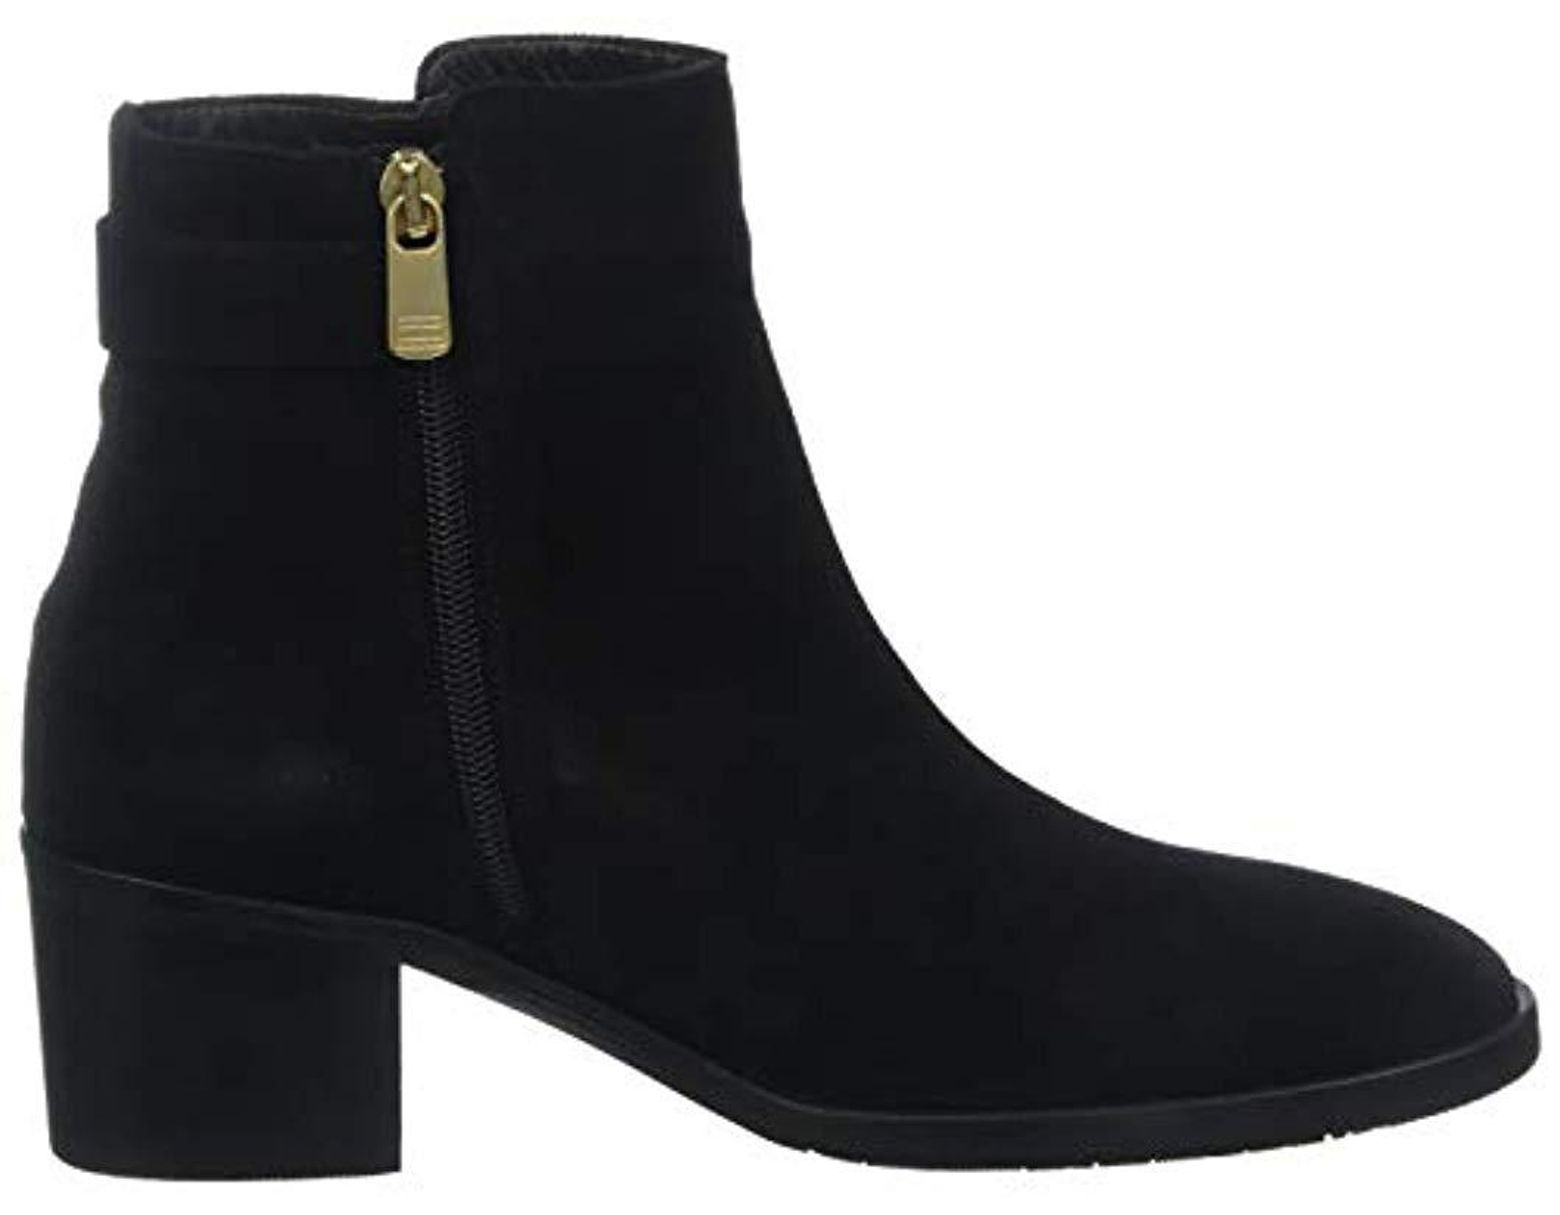 Mid S Th Hilfiger Boot Buckle Tommy Heel doeWQrBCx